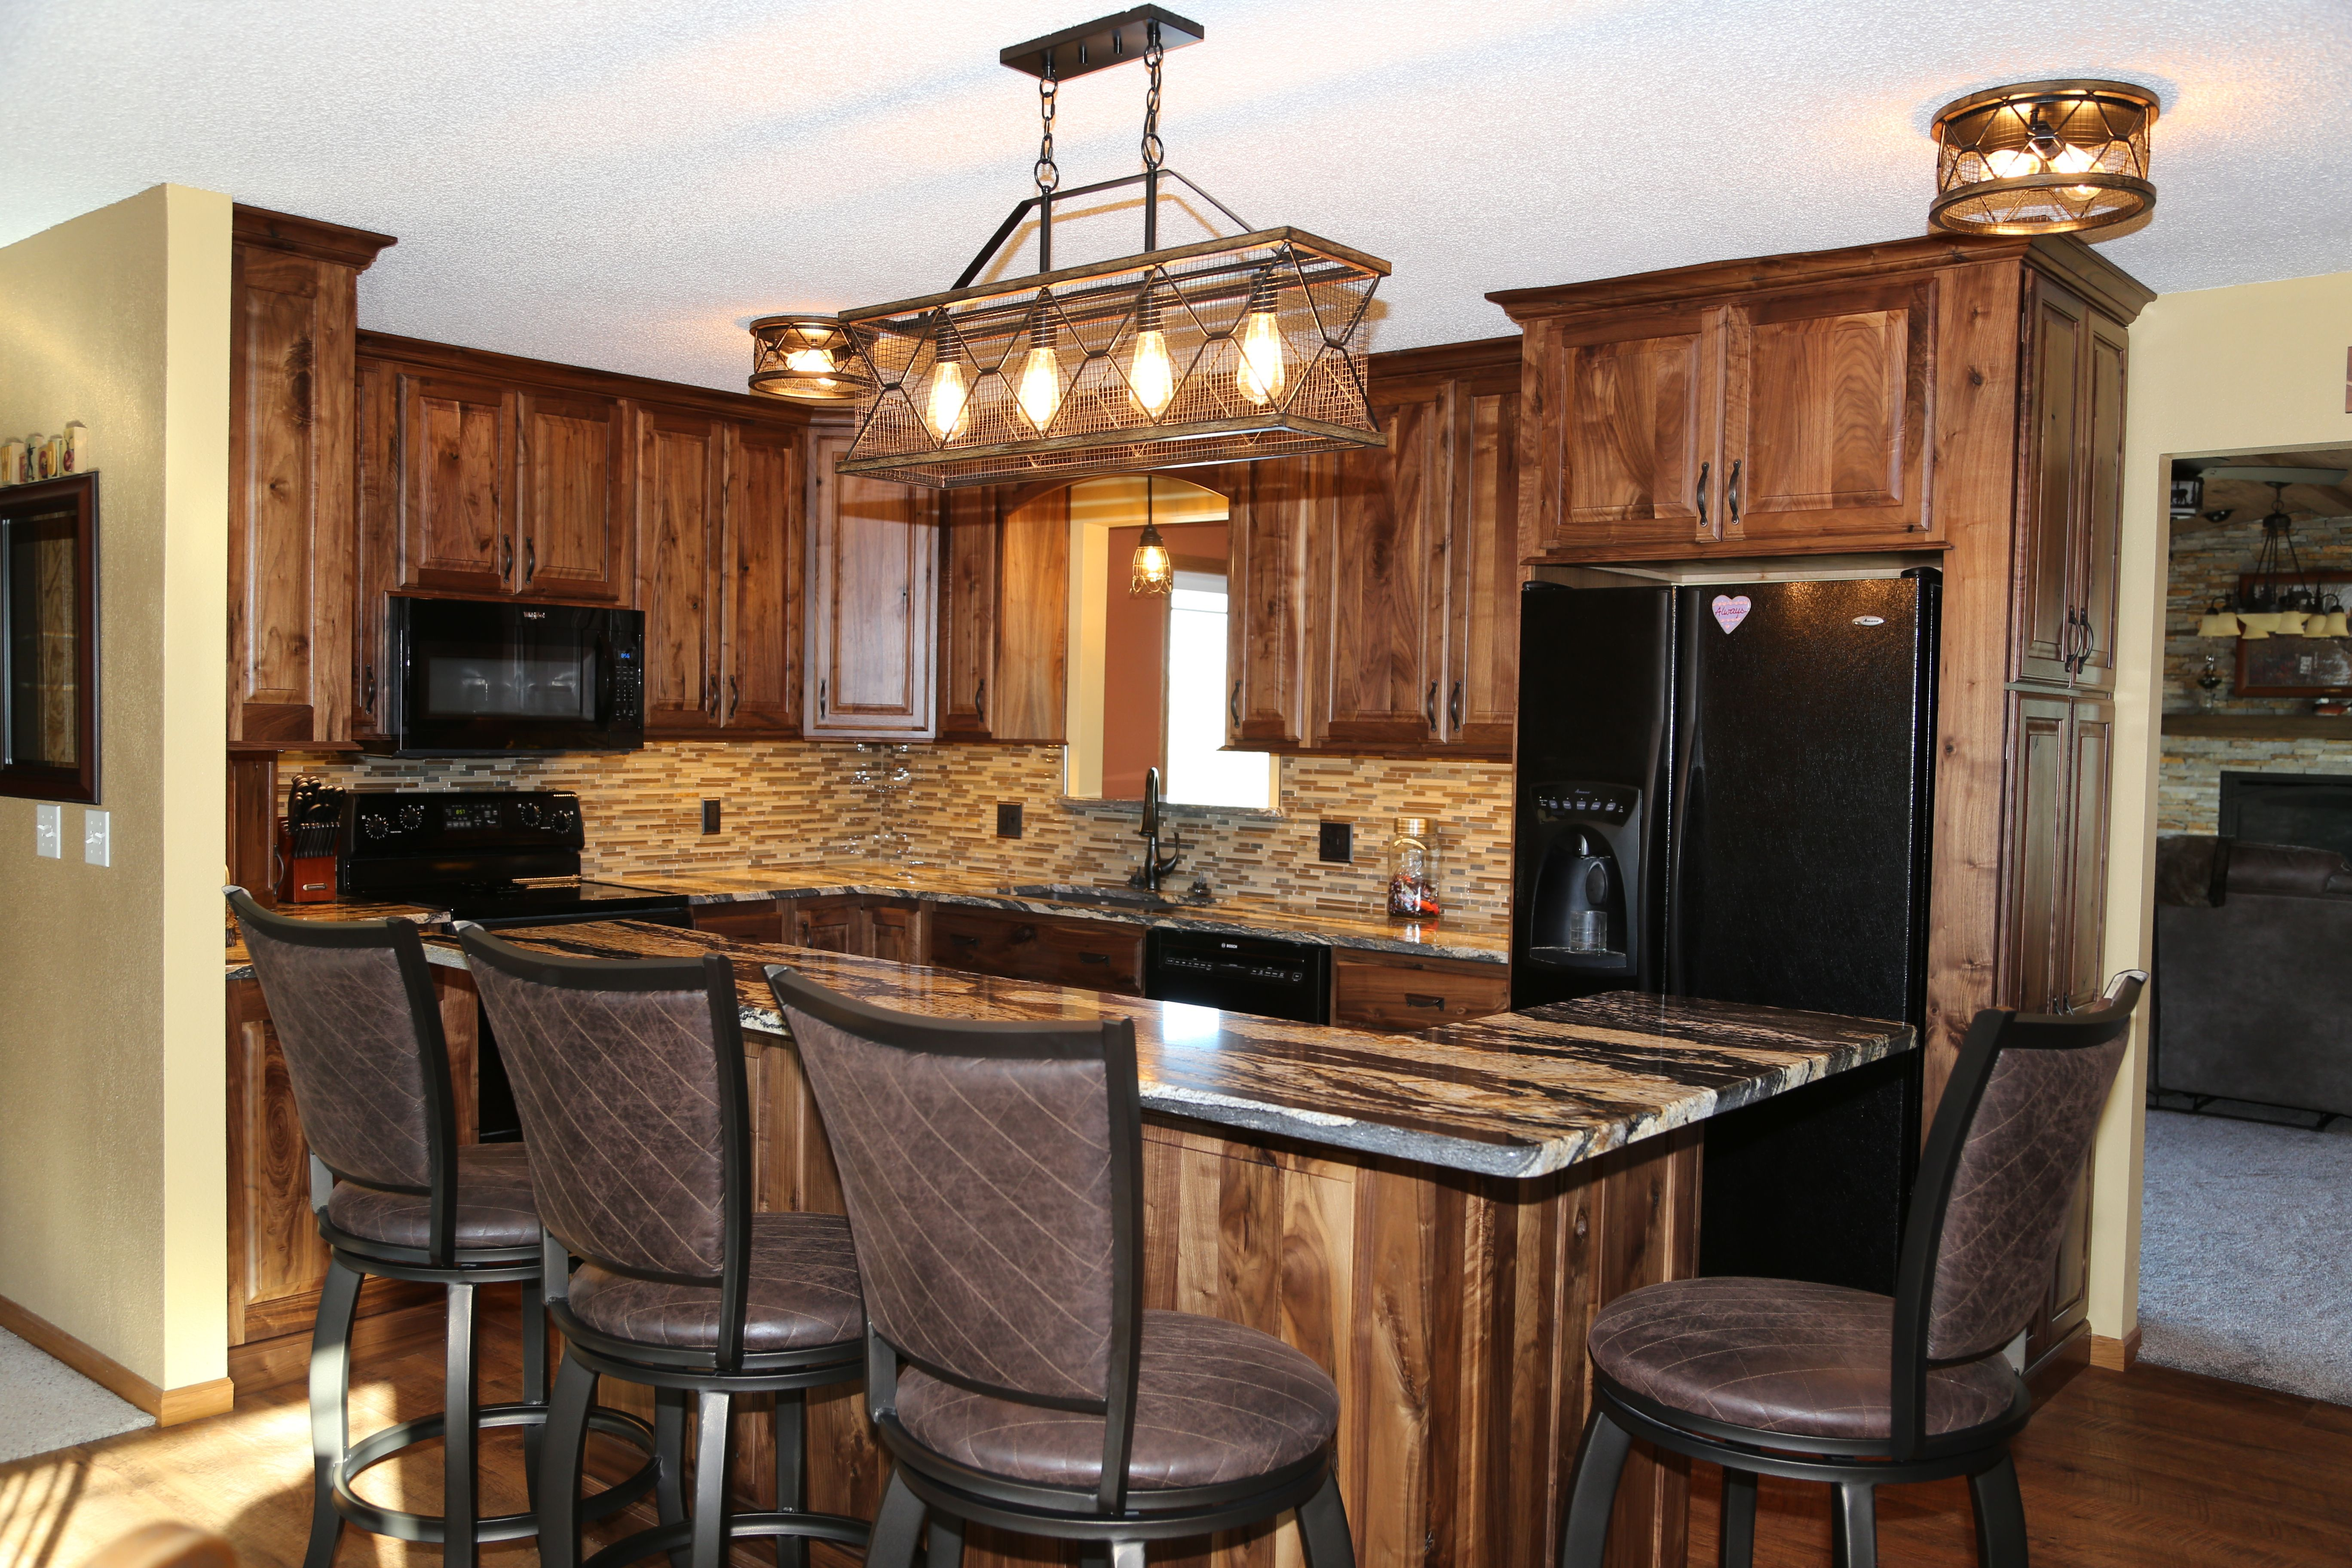 Rustic Walnut Rustic Hickory Kitchen Kitchen Cabinet Remodel Rustic Remodel Hickory Kitchen